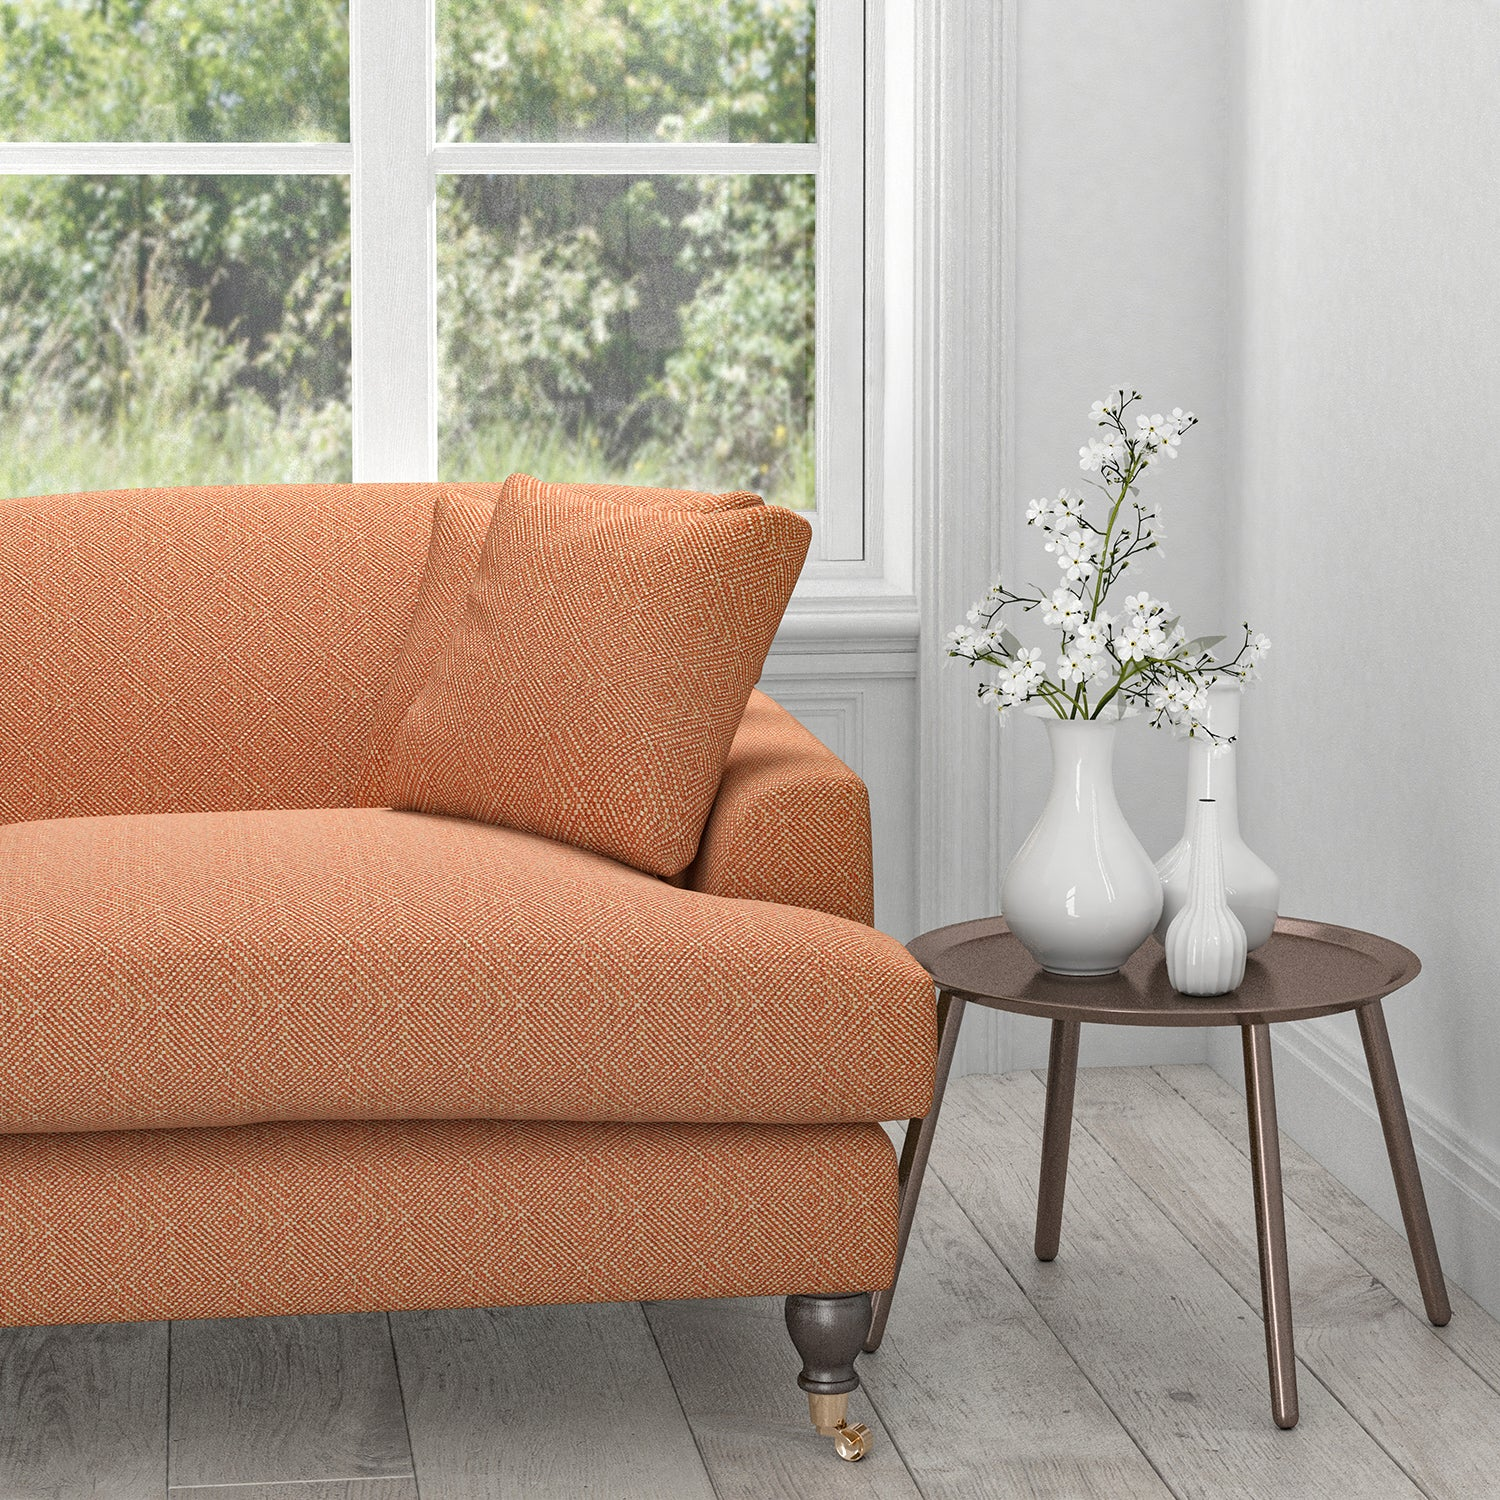 Sofa in an orange fabric with a neutral woven geometric design